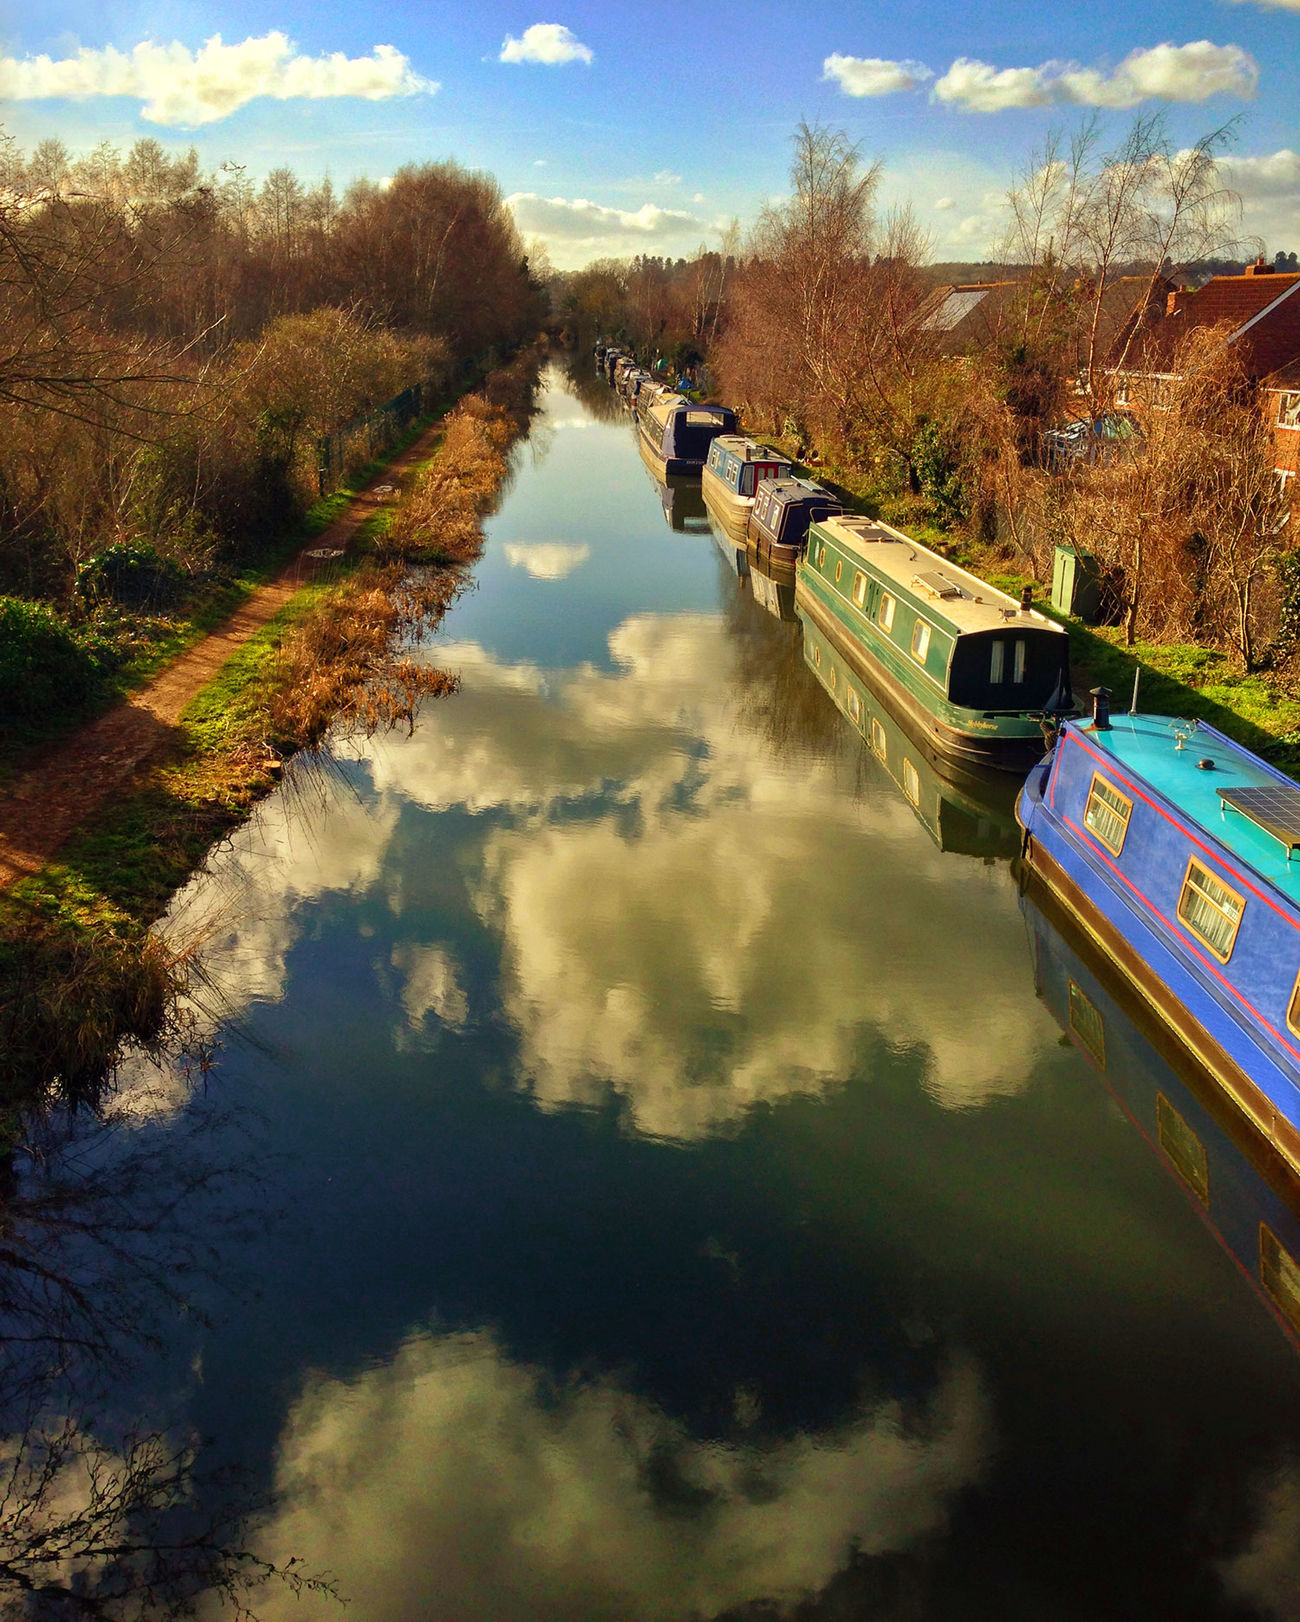 Barges on the Kennet and Avon Canal Architecture Beauty In Nature Cloud - Sky Day Mode Of Transport Nature No People Outdoors Reflection River Scenics Sky Transportation Tree Water